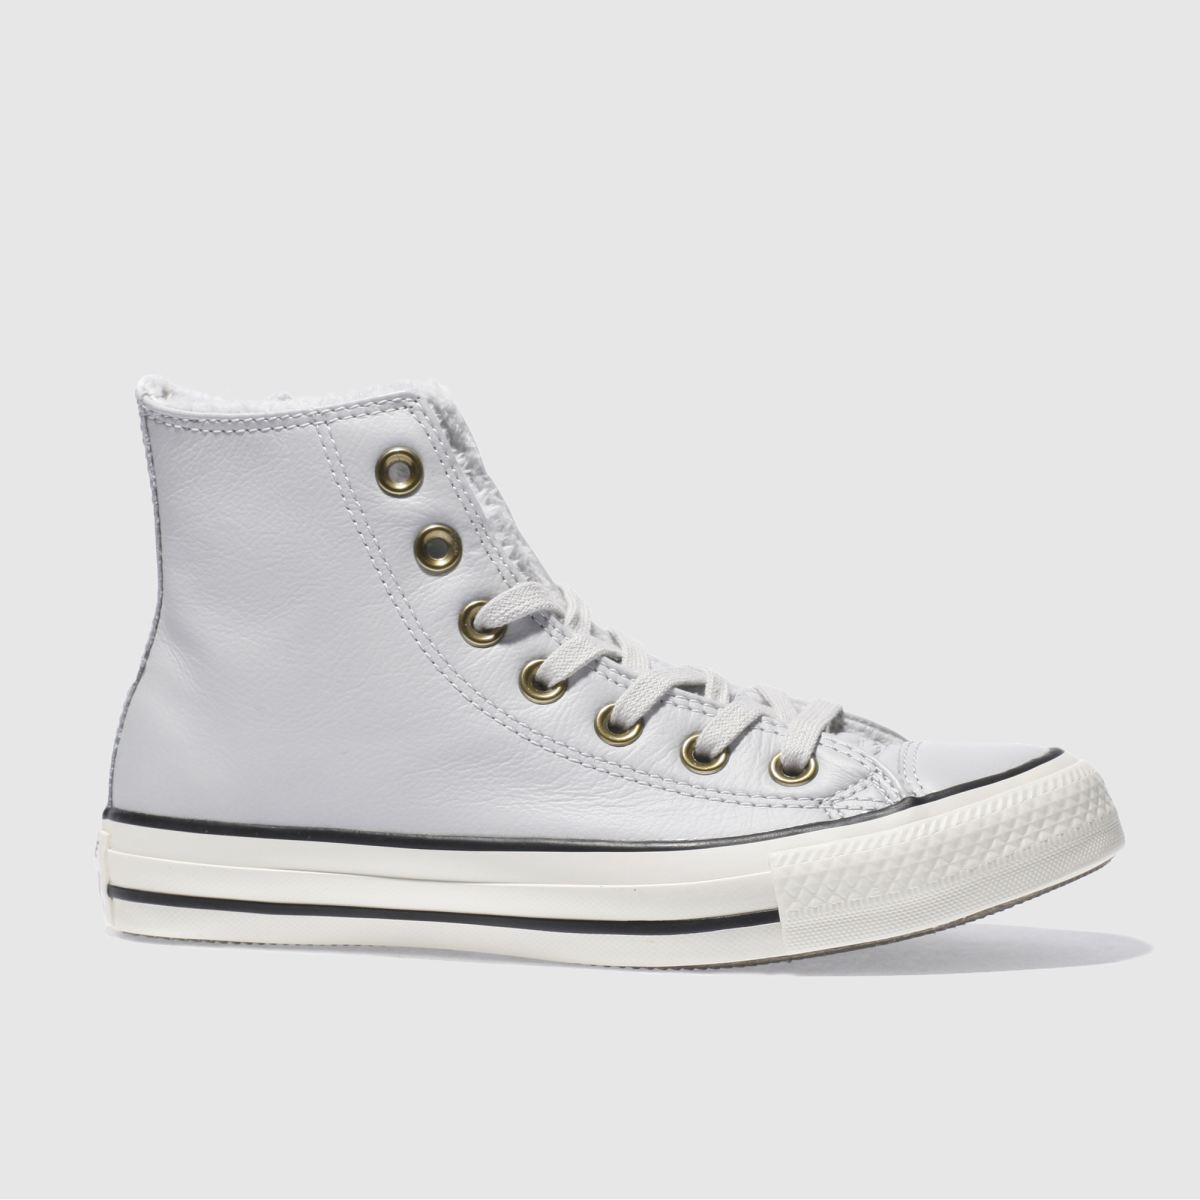 converse light grey leather faux fur lined hi trainers